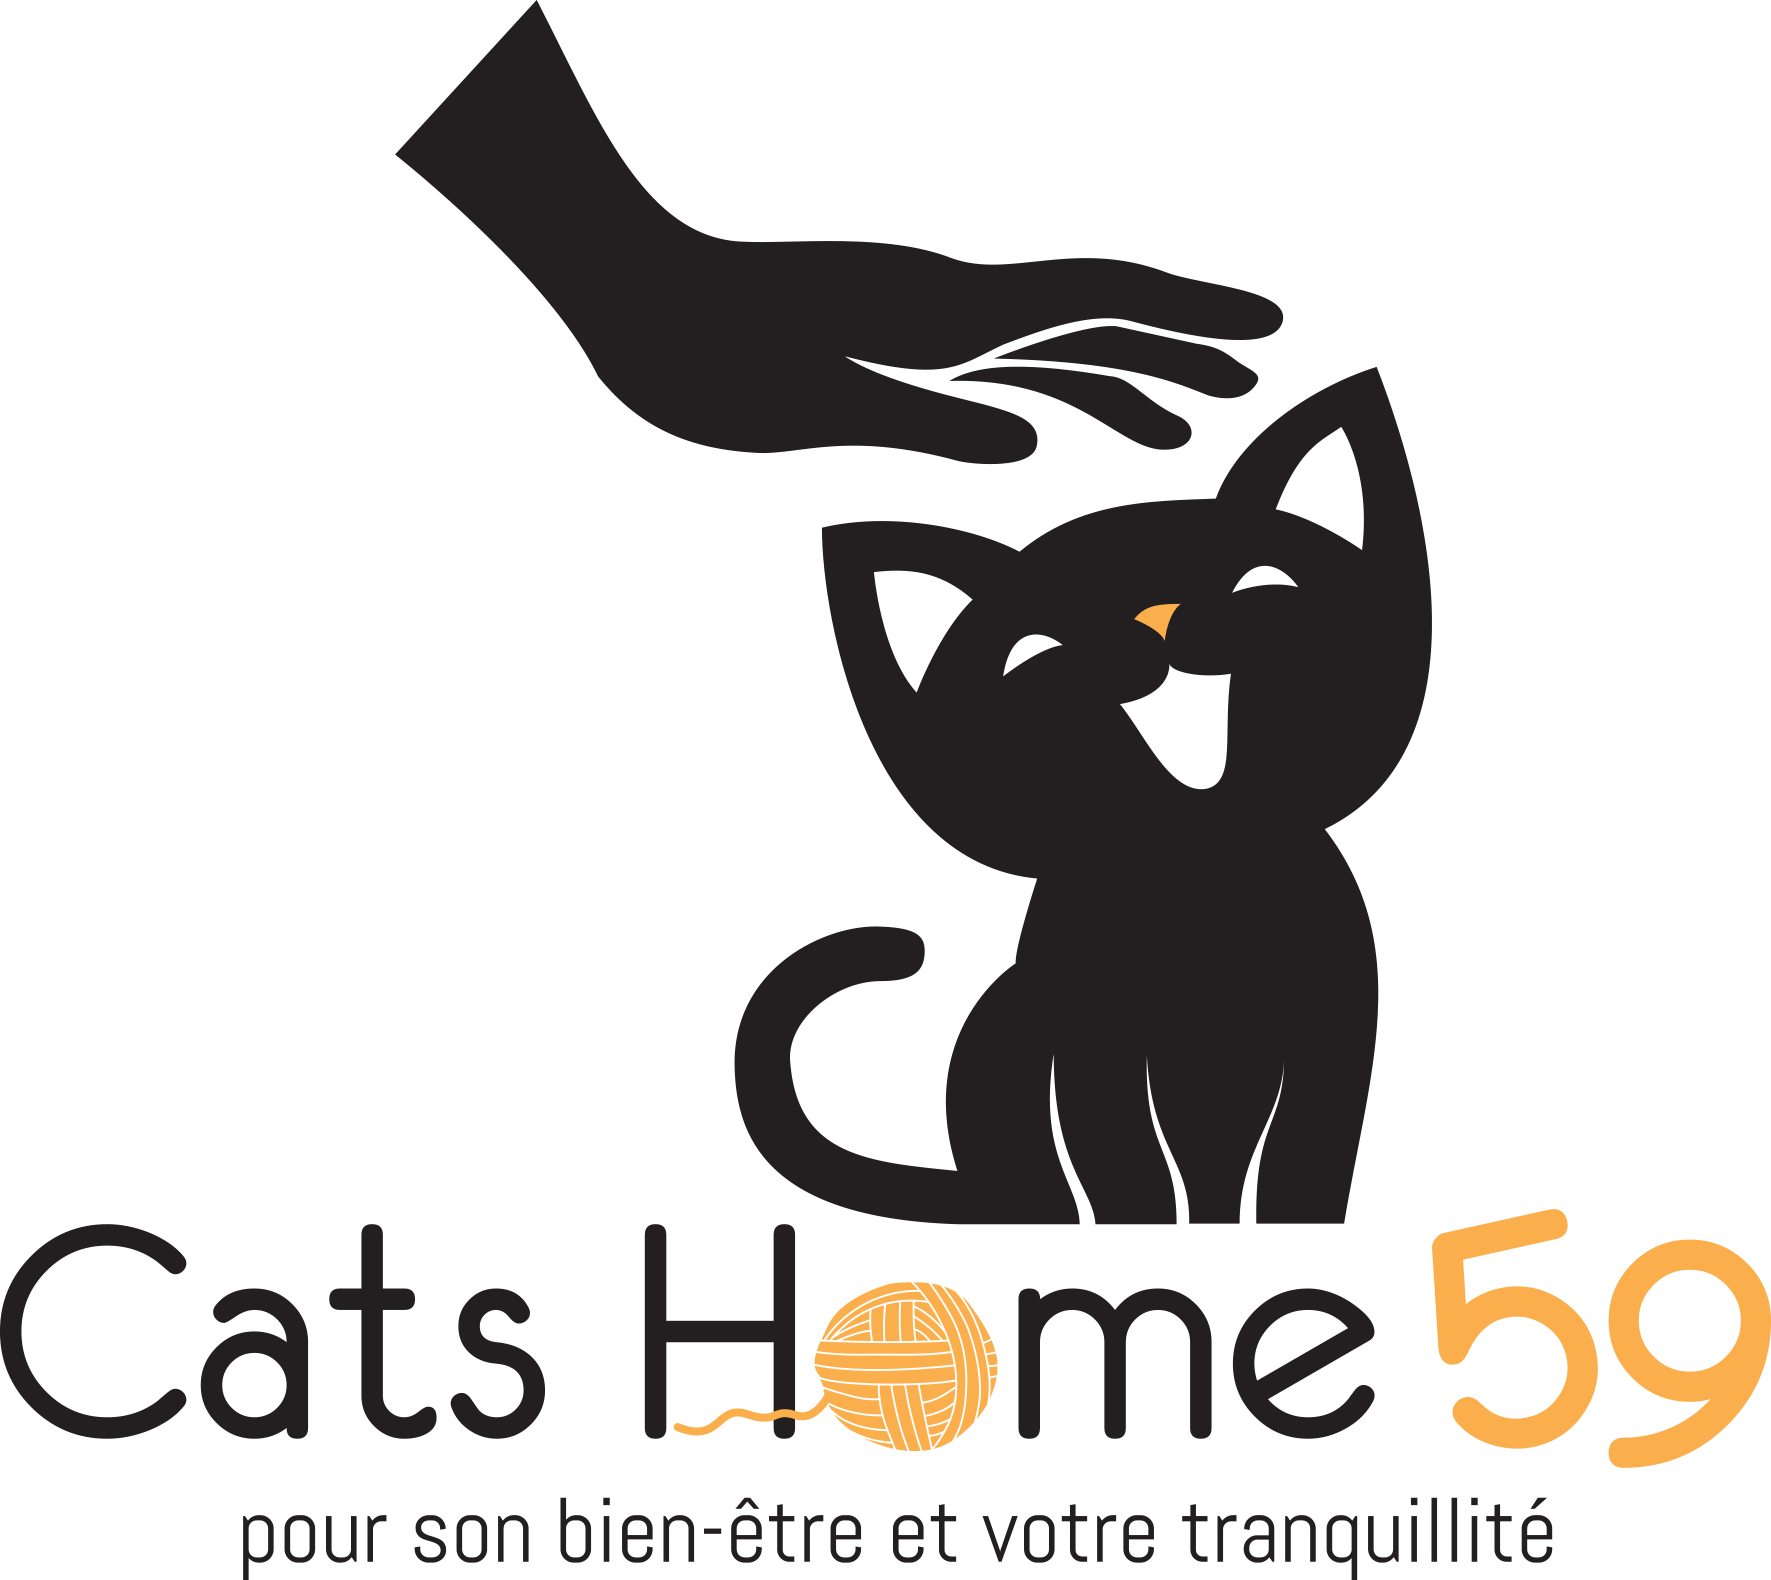 Cats Home 59